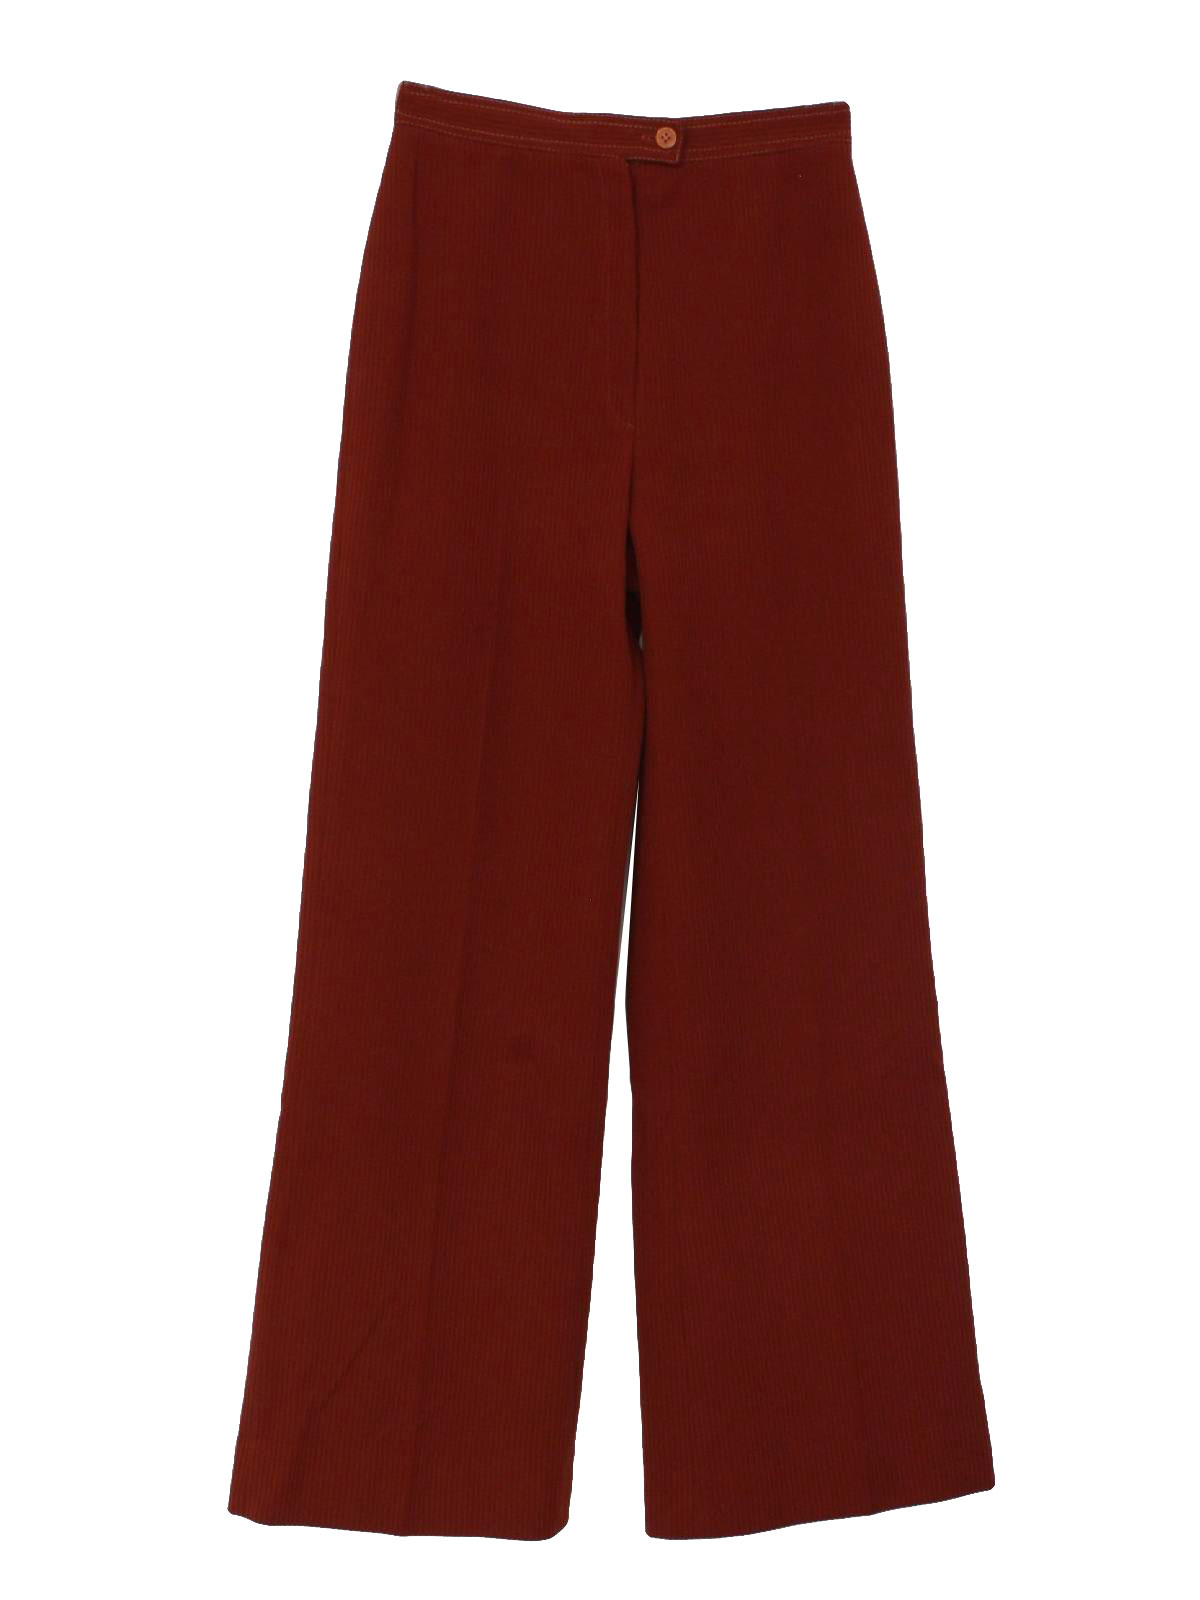 Popular  Pants The Skinny Luxe Corduroy In Burnt Orange In Red Burnt Orange